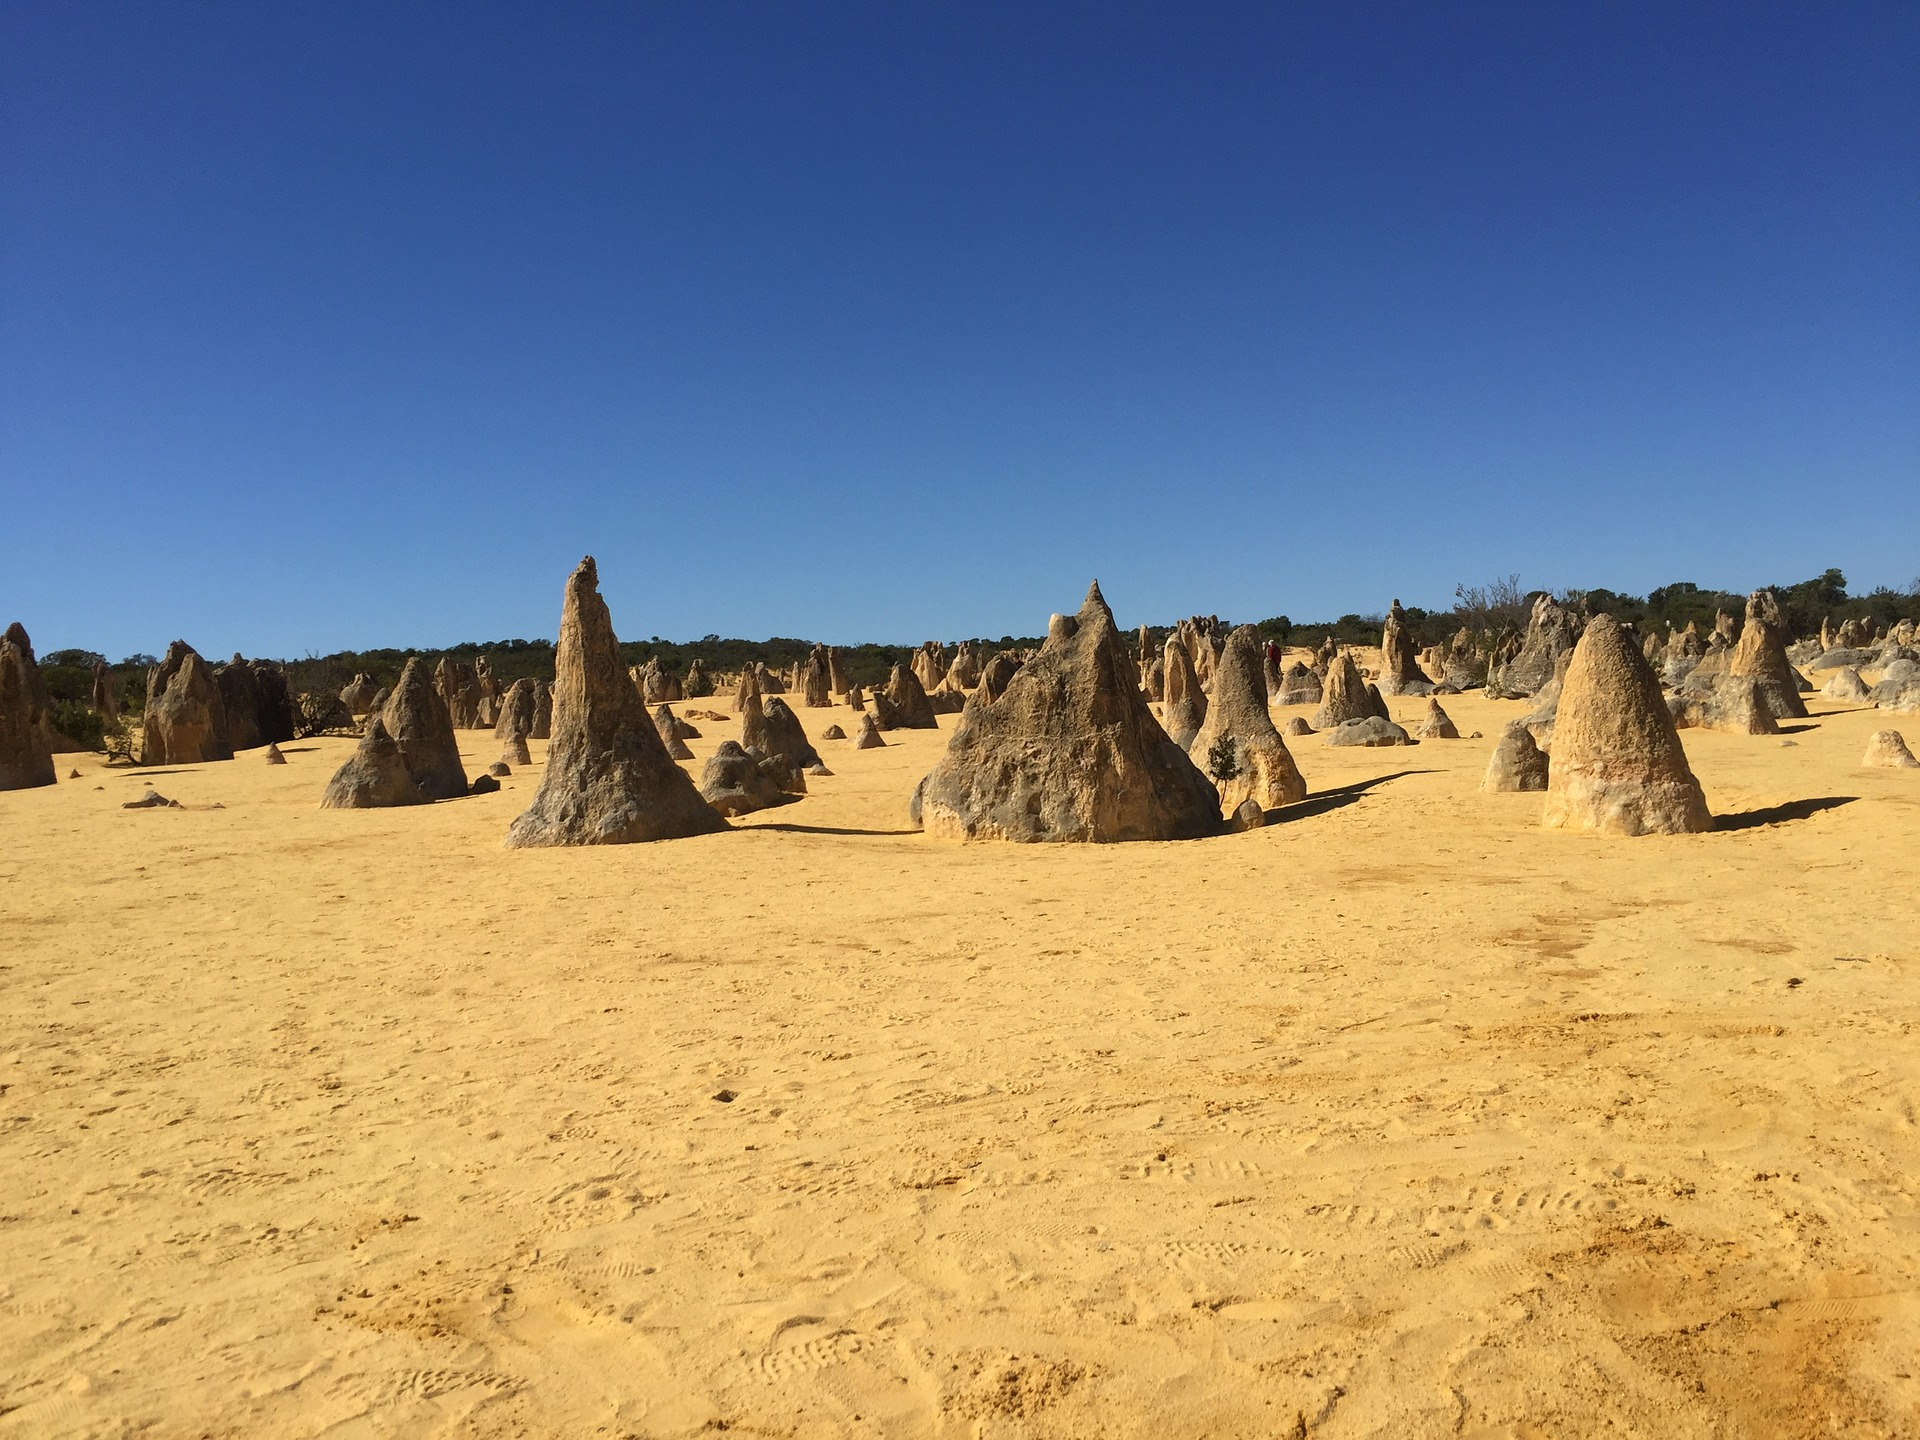 The Pinnacles are limestone rock formations within Nambung National Park, Western Australia